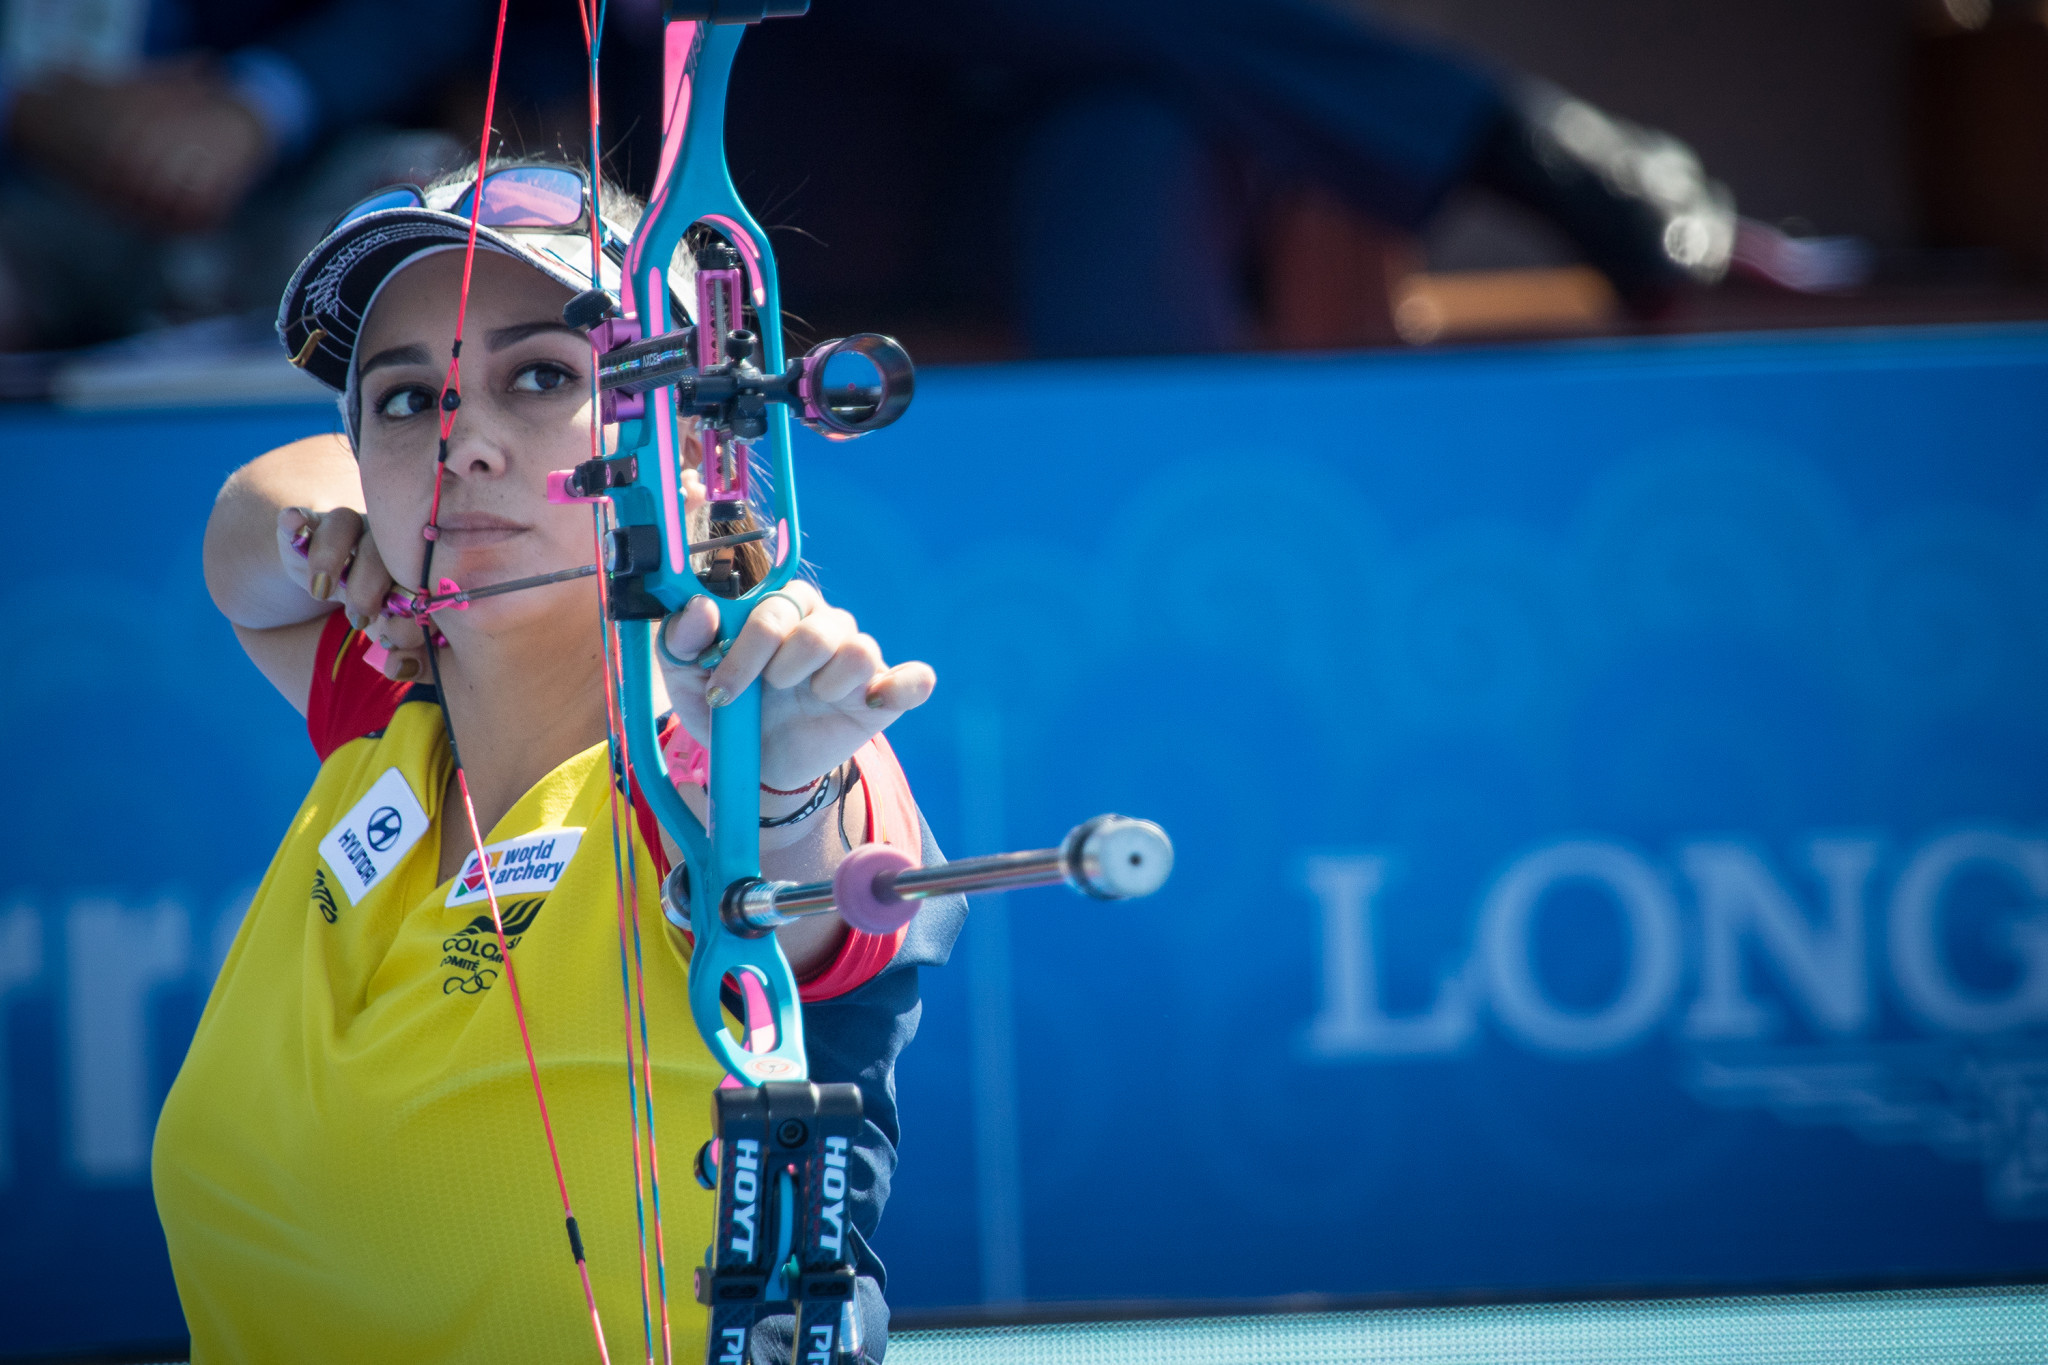 López aiming for best possible start to season at home Archery World Cup in Medellin